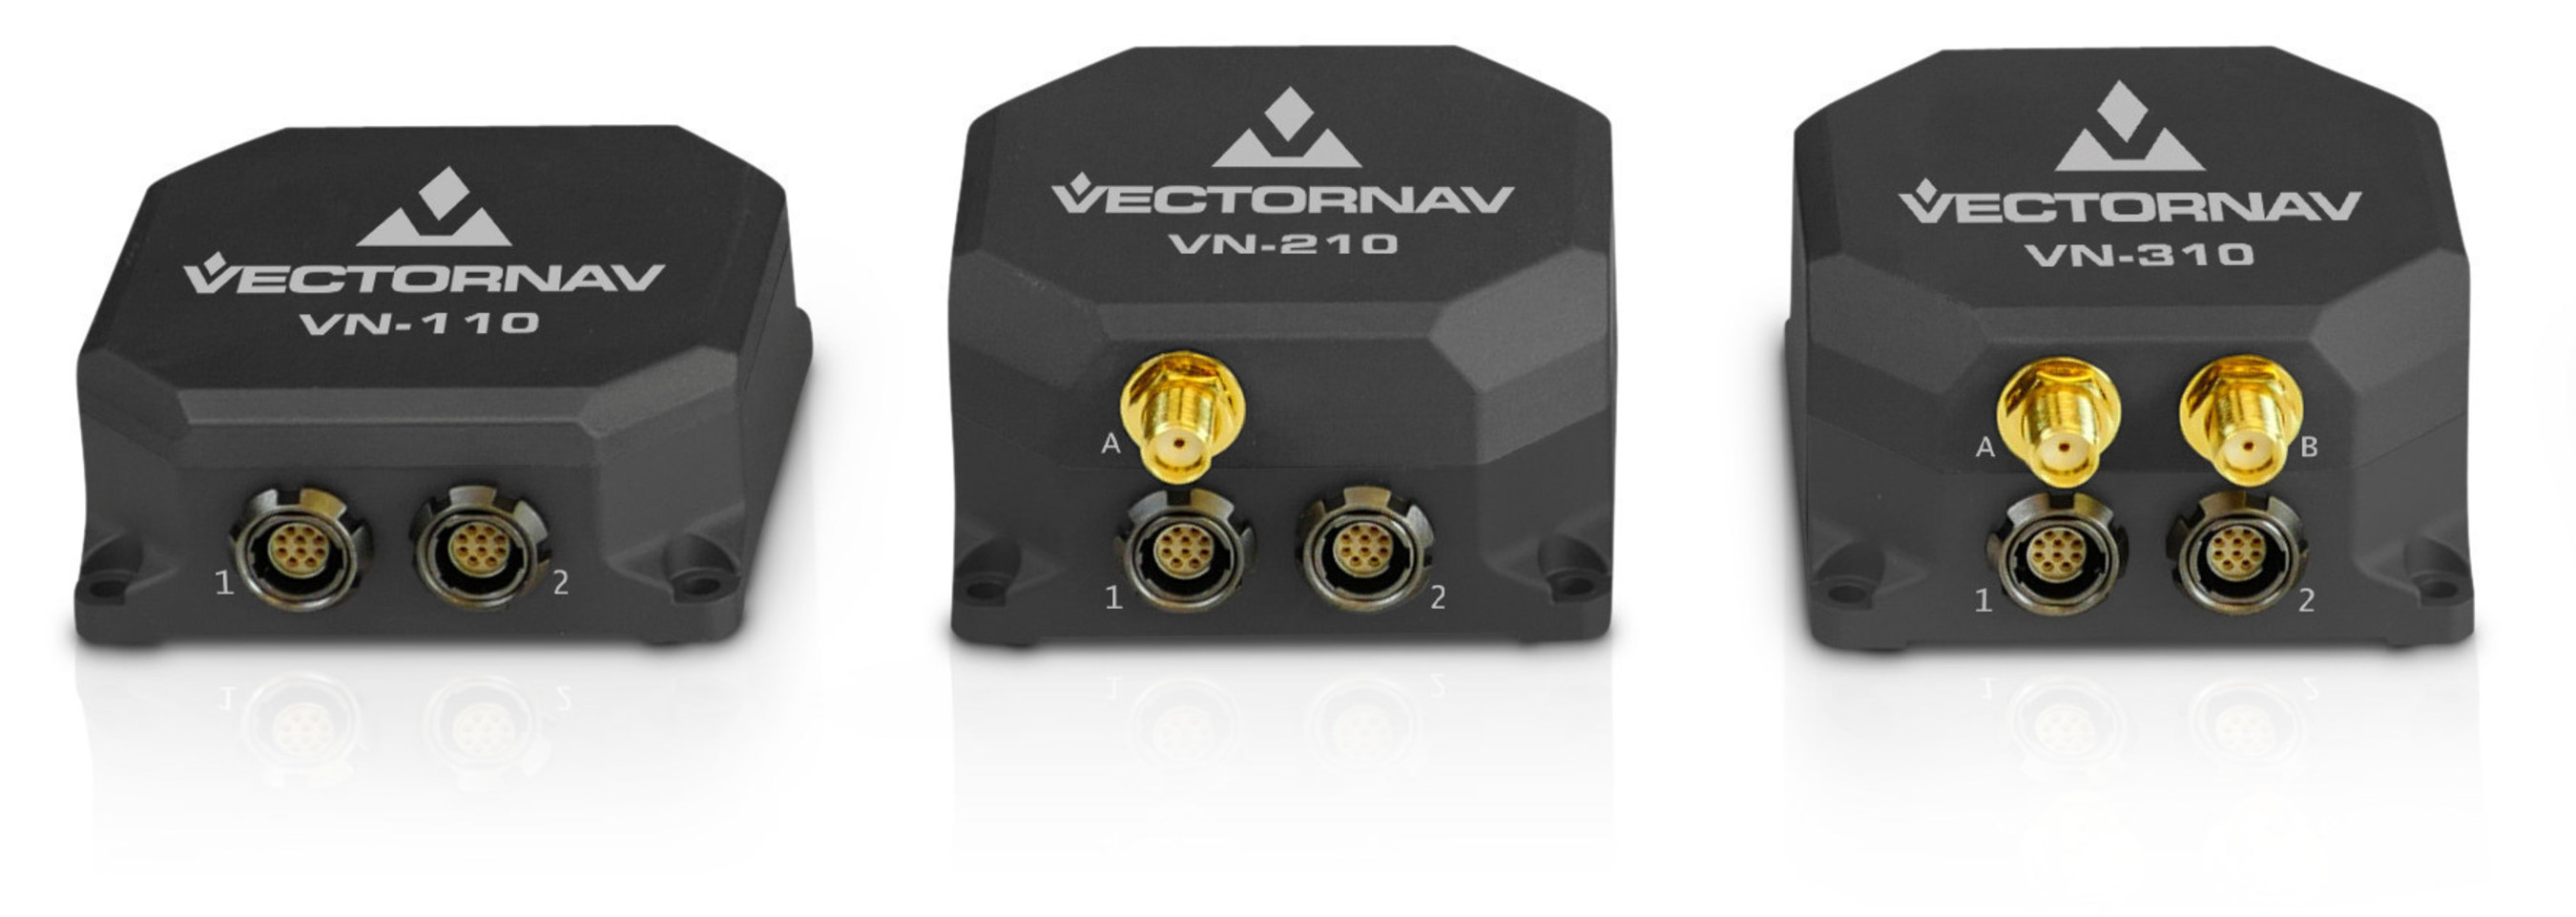 VectorNav Technologies Introduces Tactical Series Line of Inertial Navigation Systems